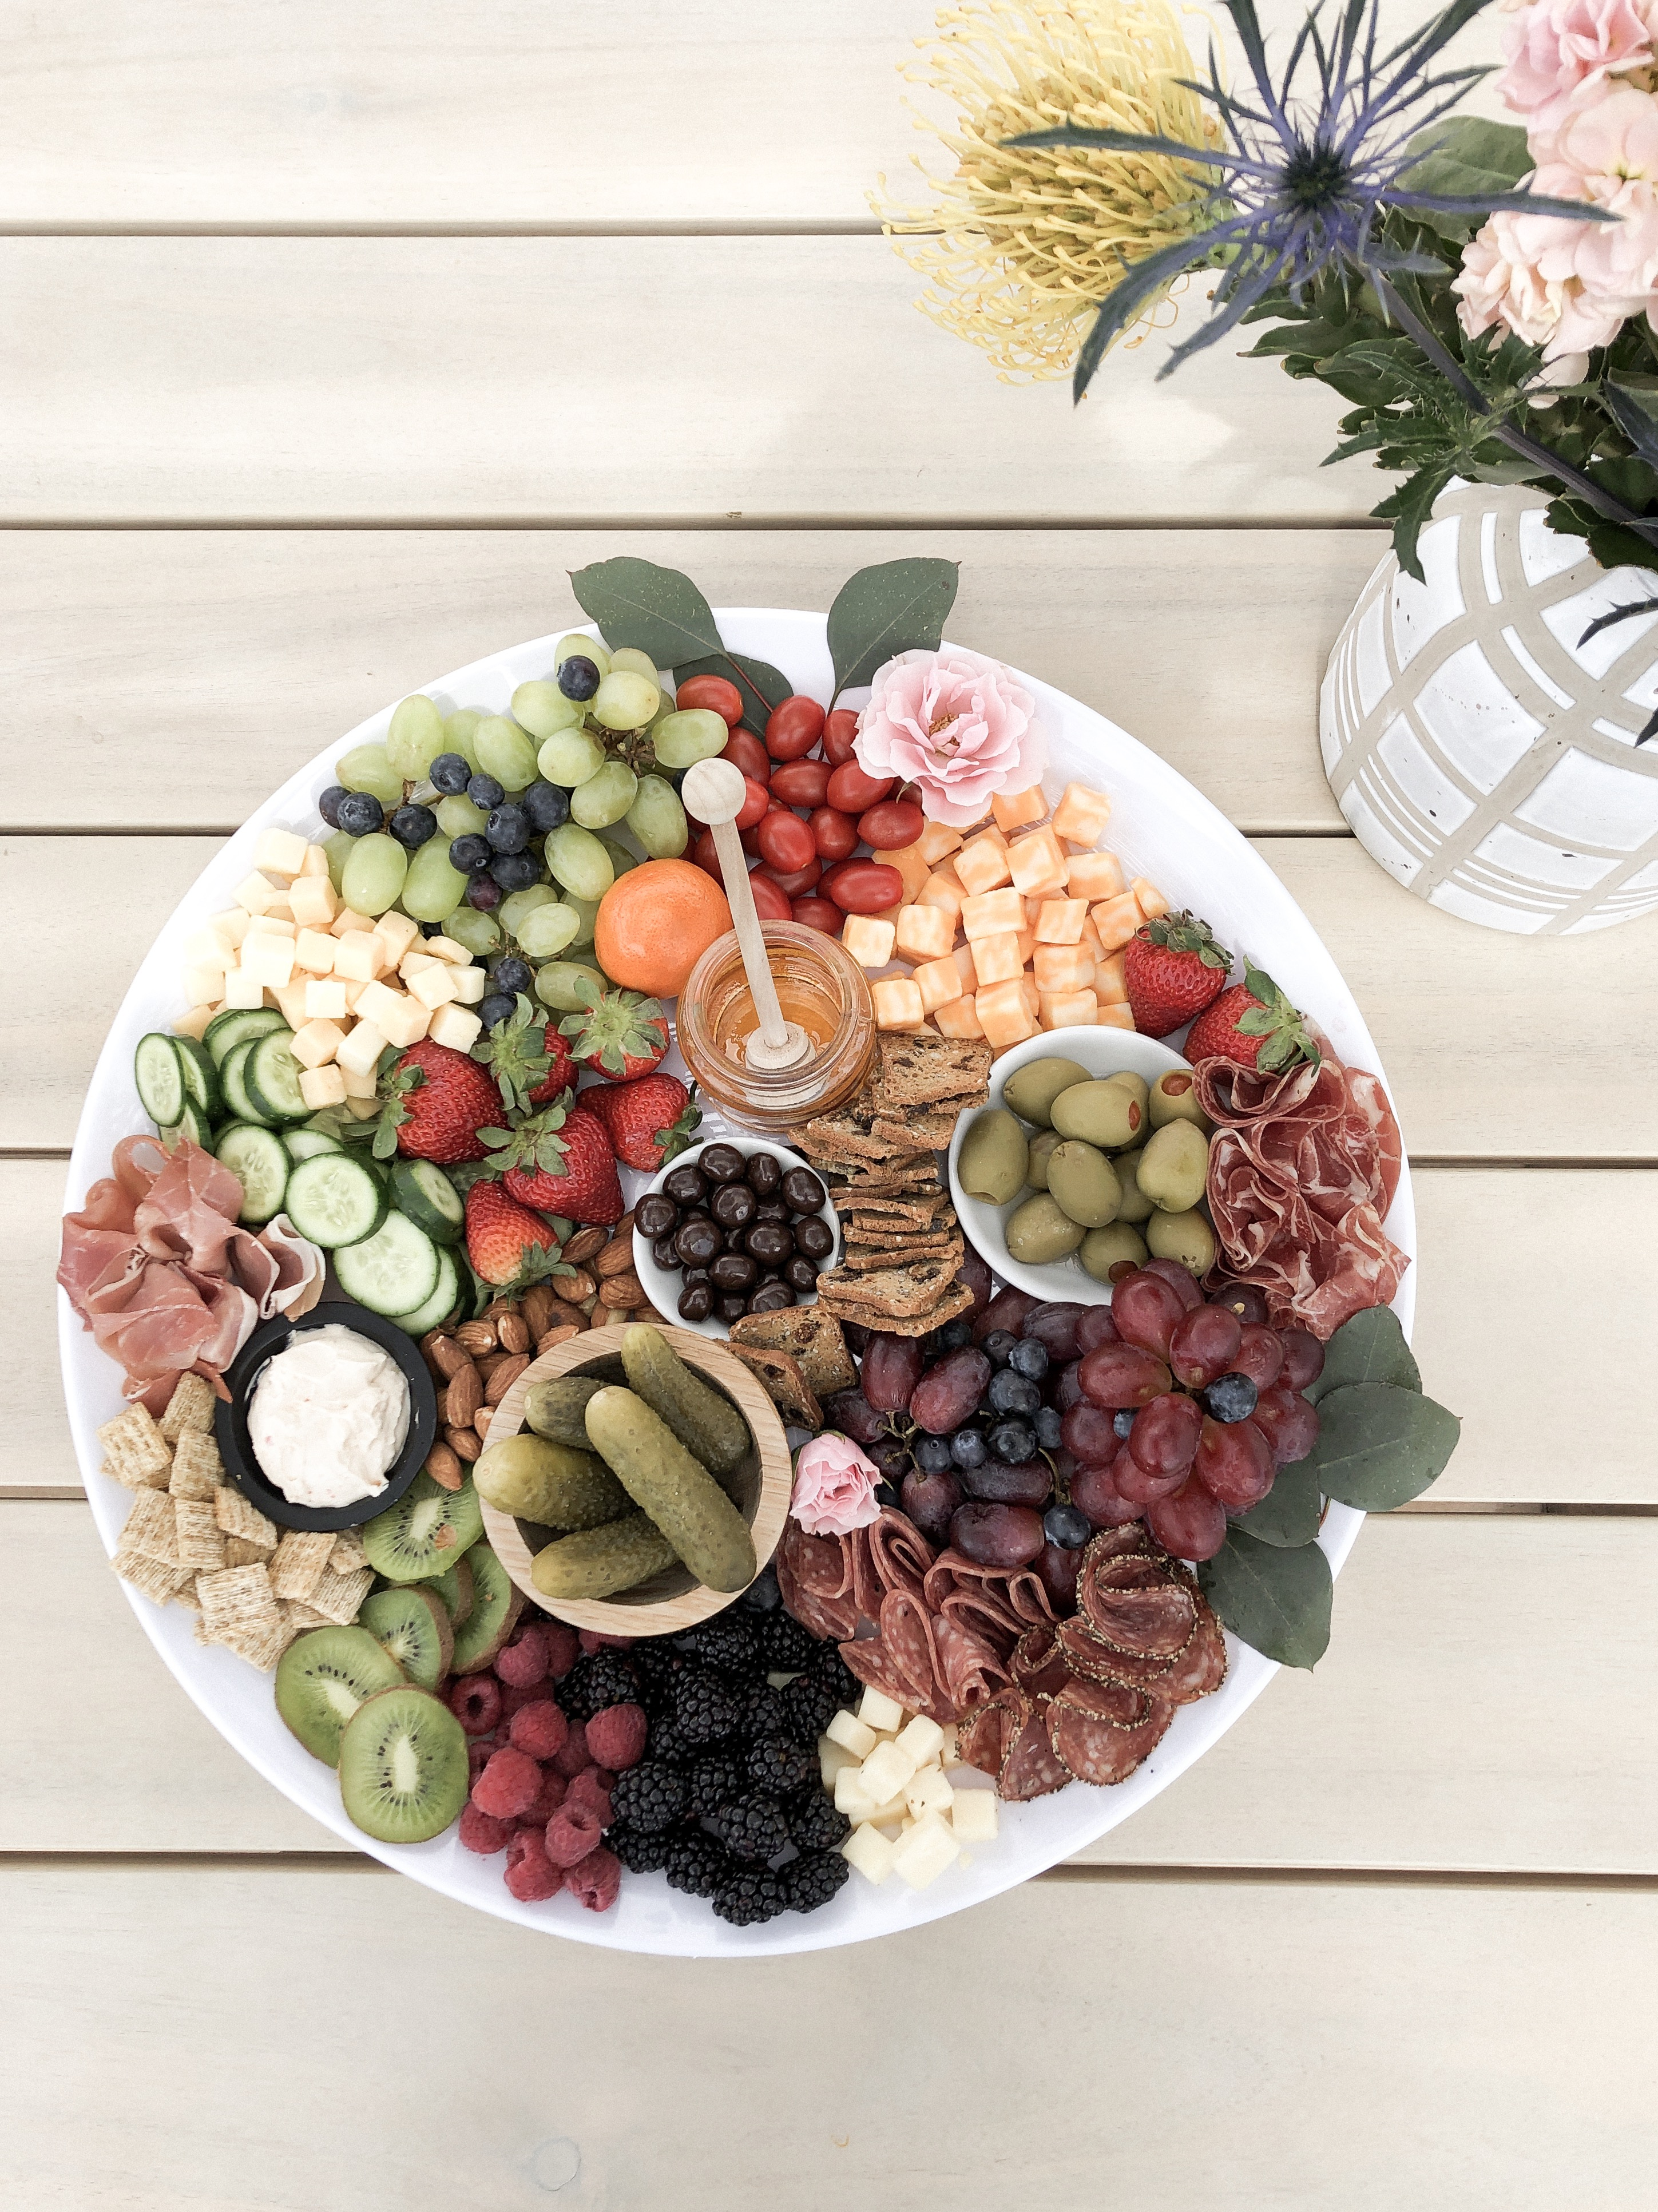 how to arrange an insta- worthy charcuterie board, the whole family will love!